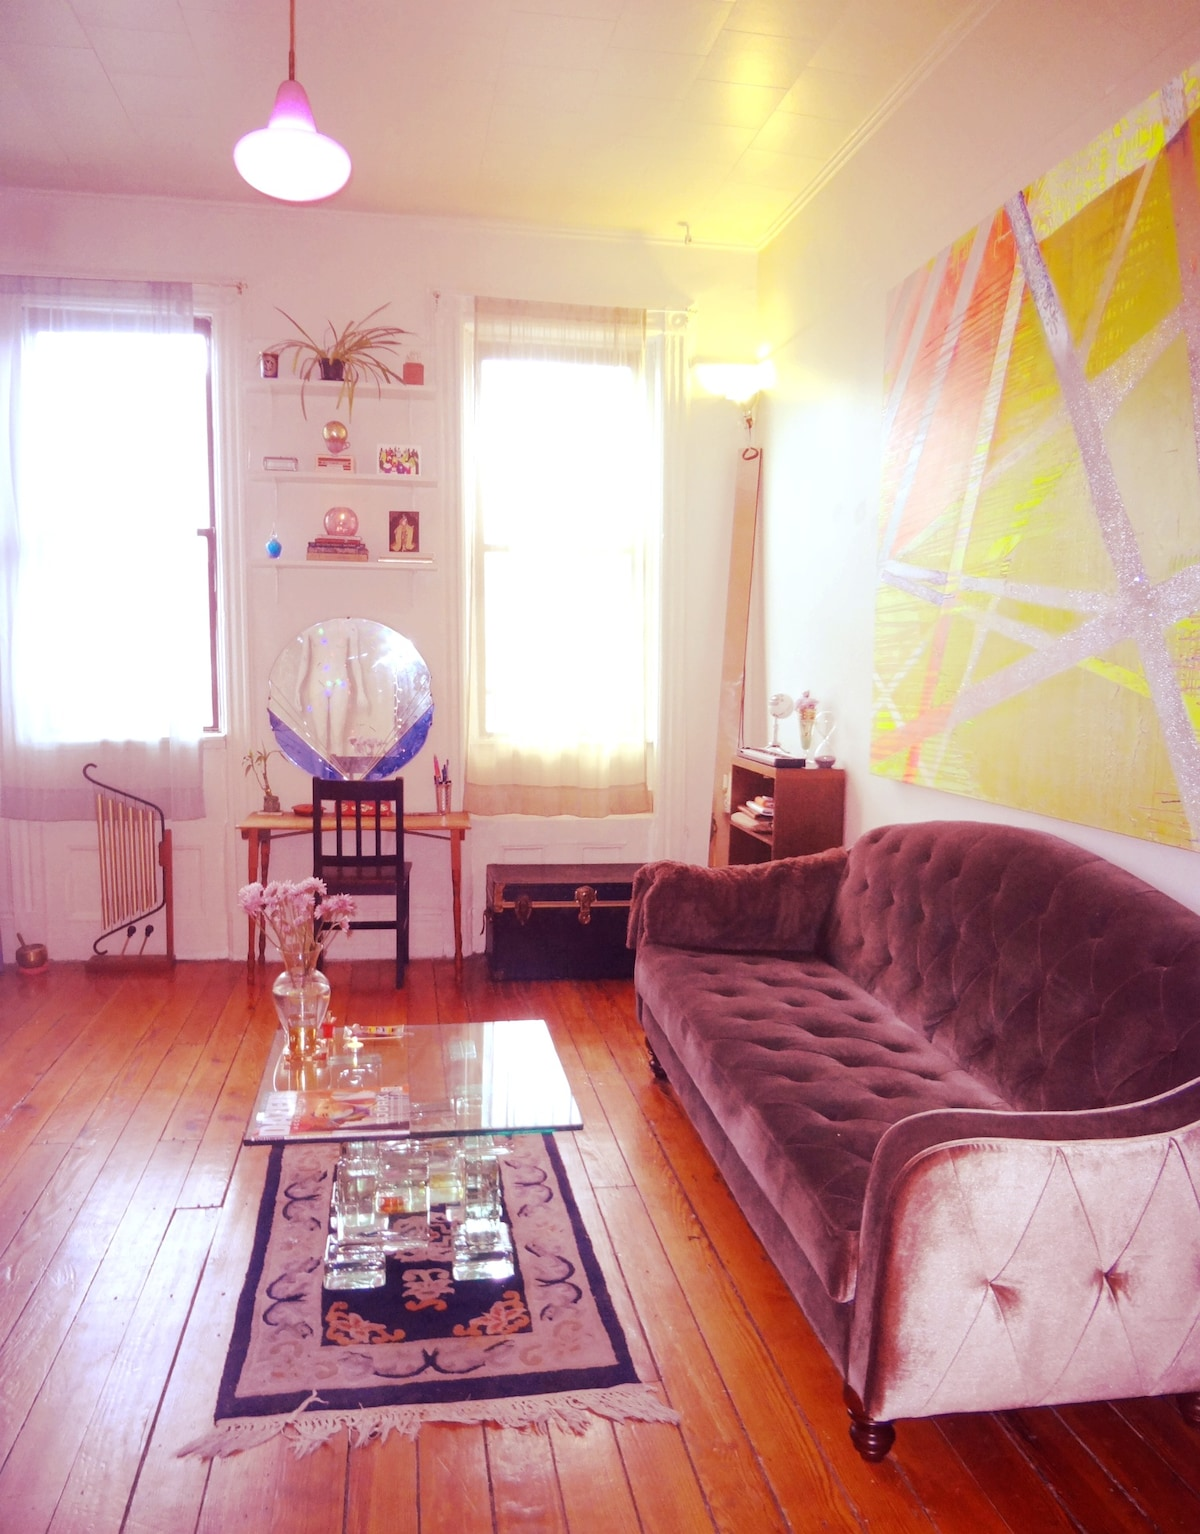 The Living Room (this room is only available as a common room if you are renting the entire apt)